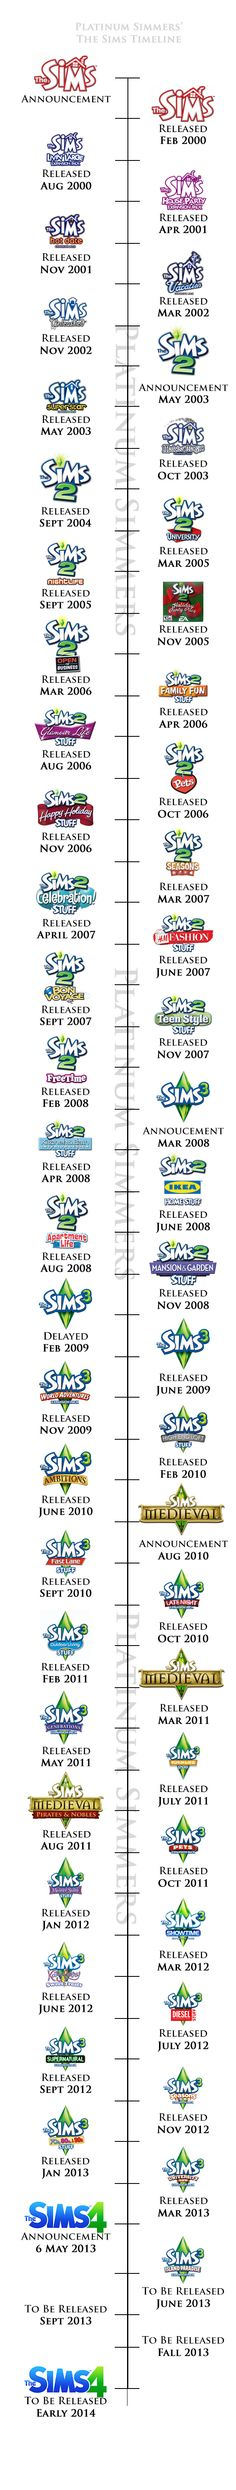 The Sims History in Timelines / Oh my, I have been playing this game for 14 years!! And you?